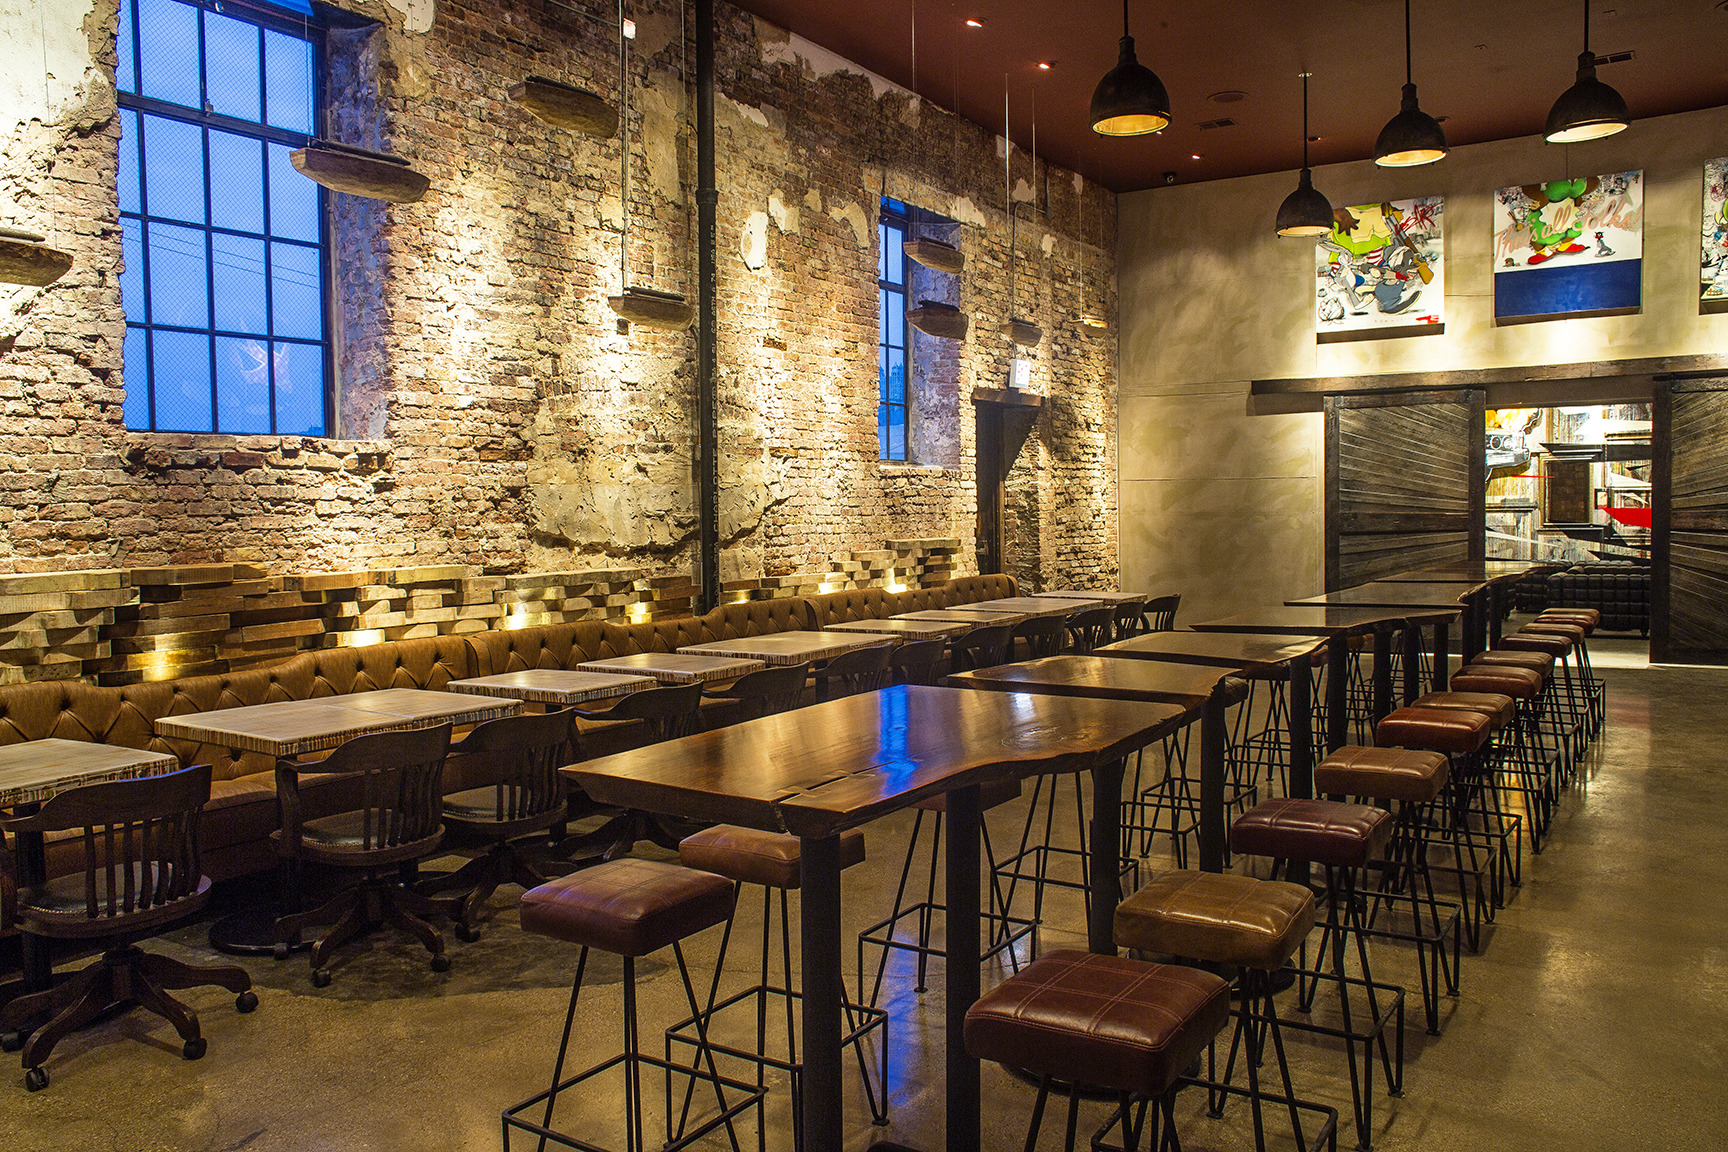 Fulton Market Kitchen puts art at the forefront.